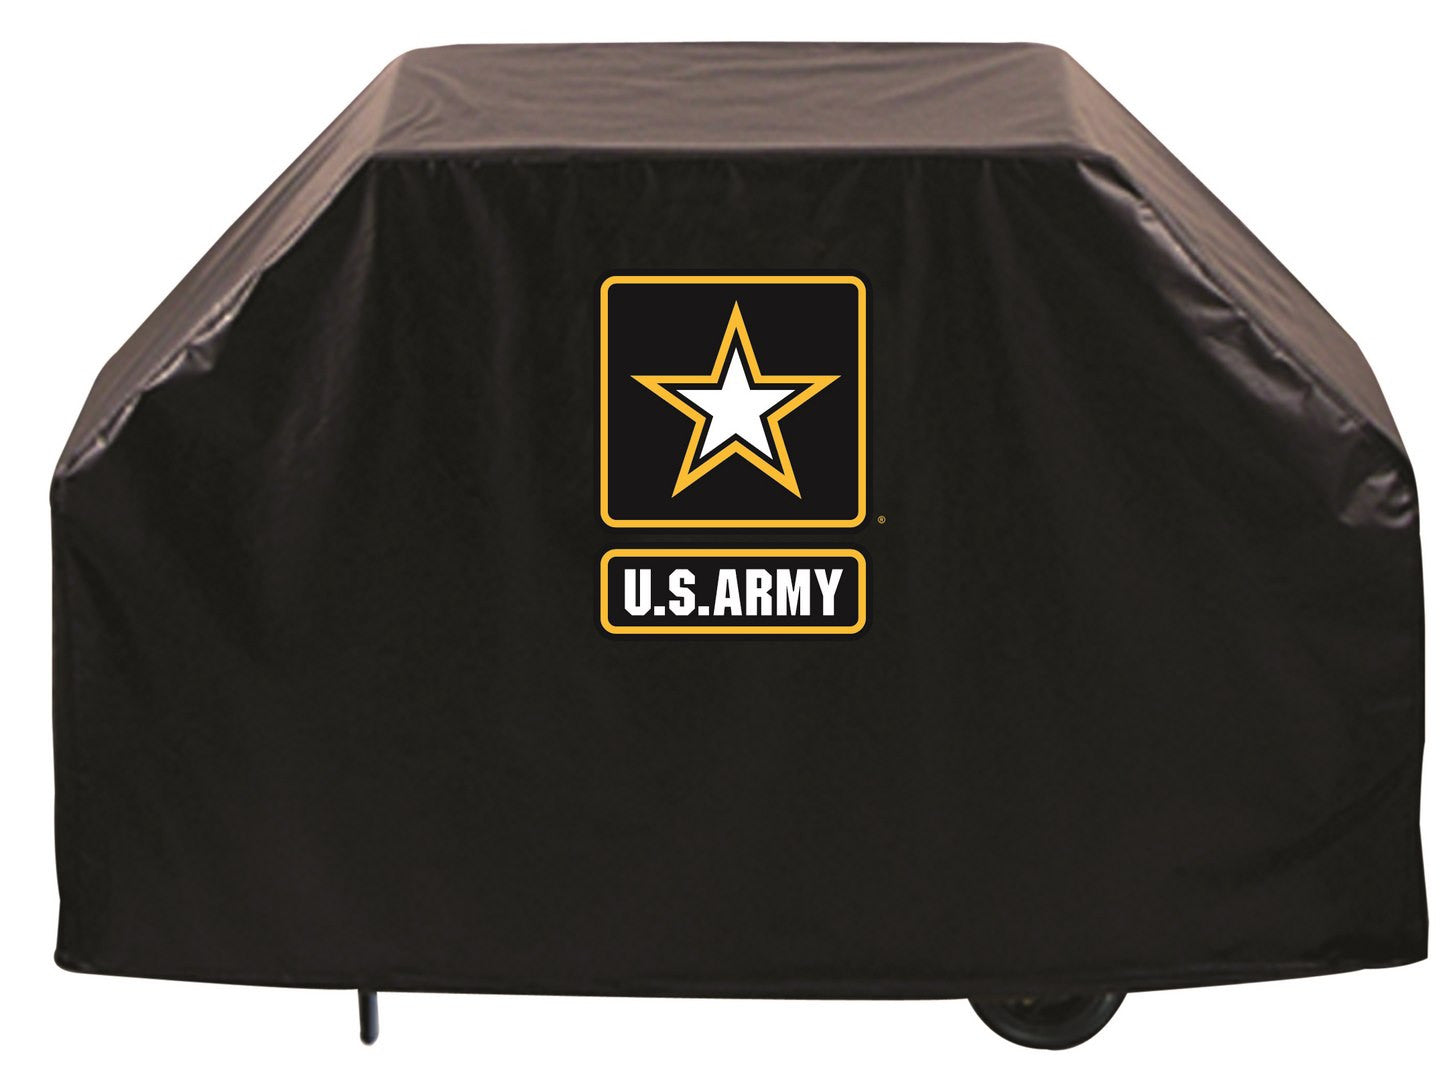 United States Army BBQ Grill Cover   Grill-Cover-Store